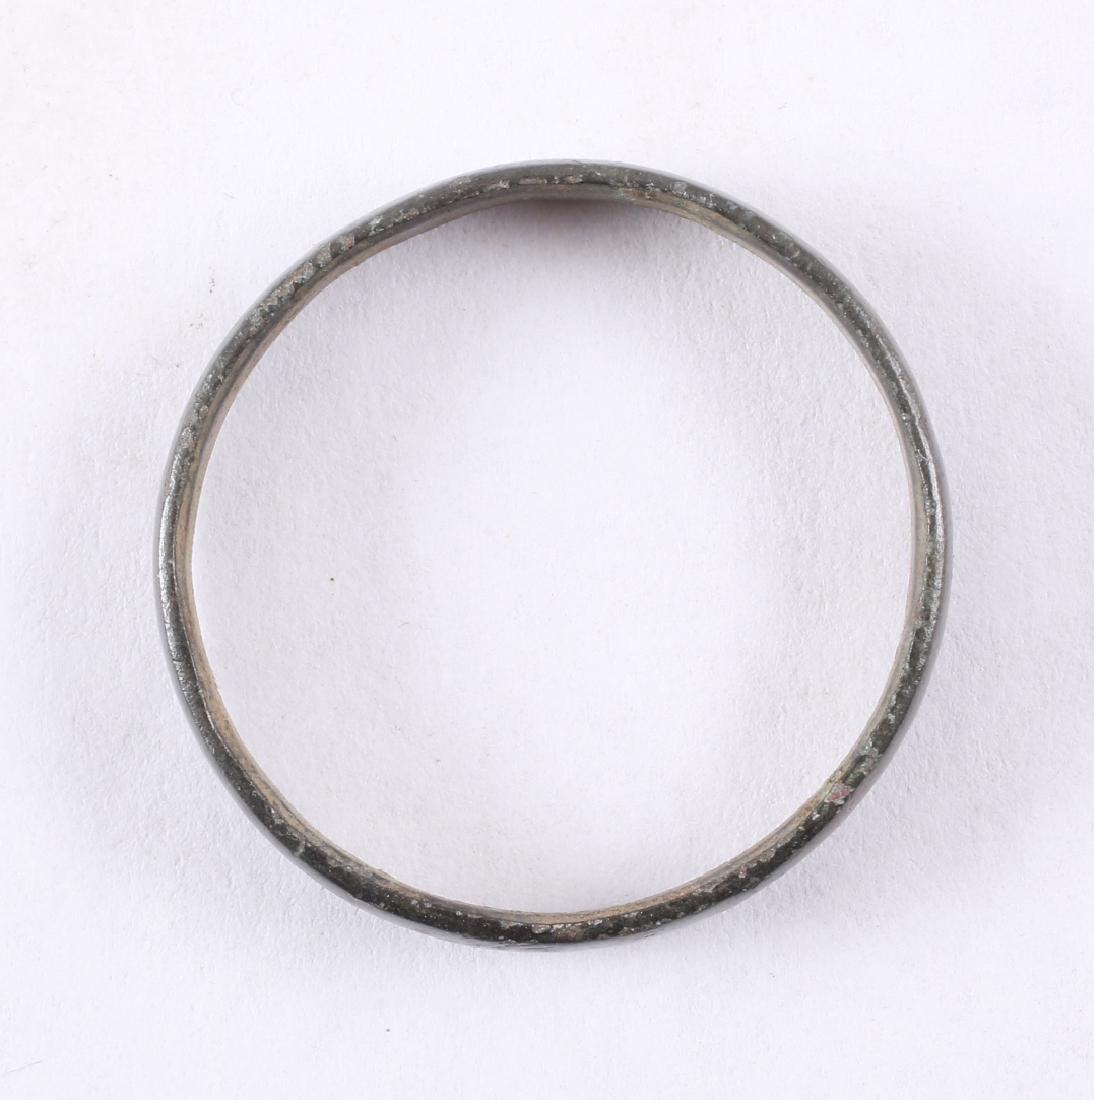 Viking Man's Wedding Ring, 850-1050 - 2